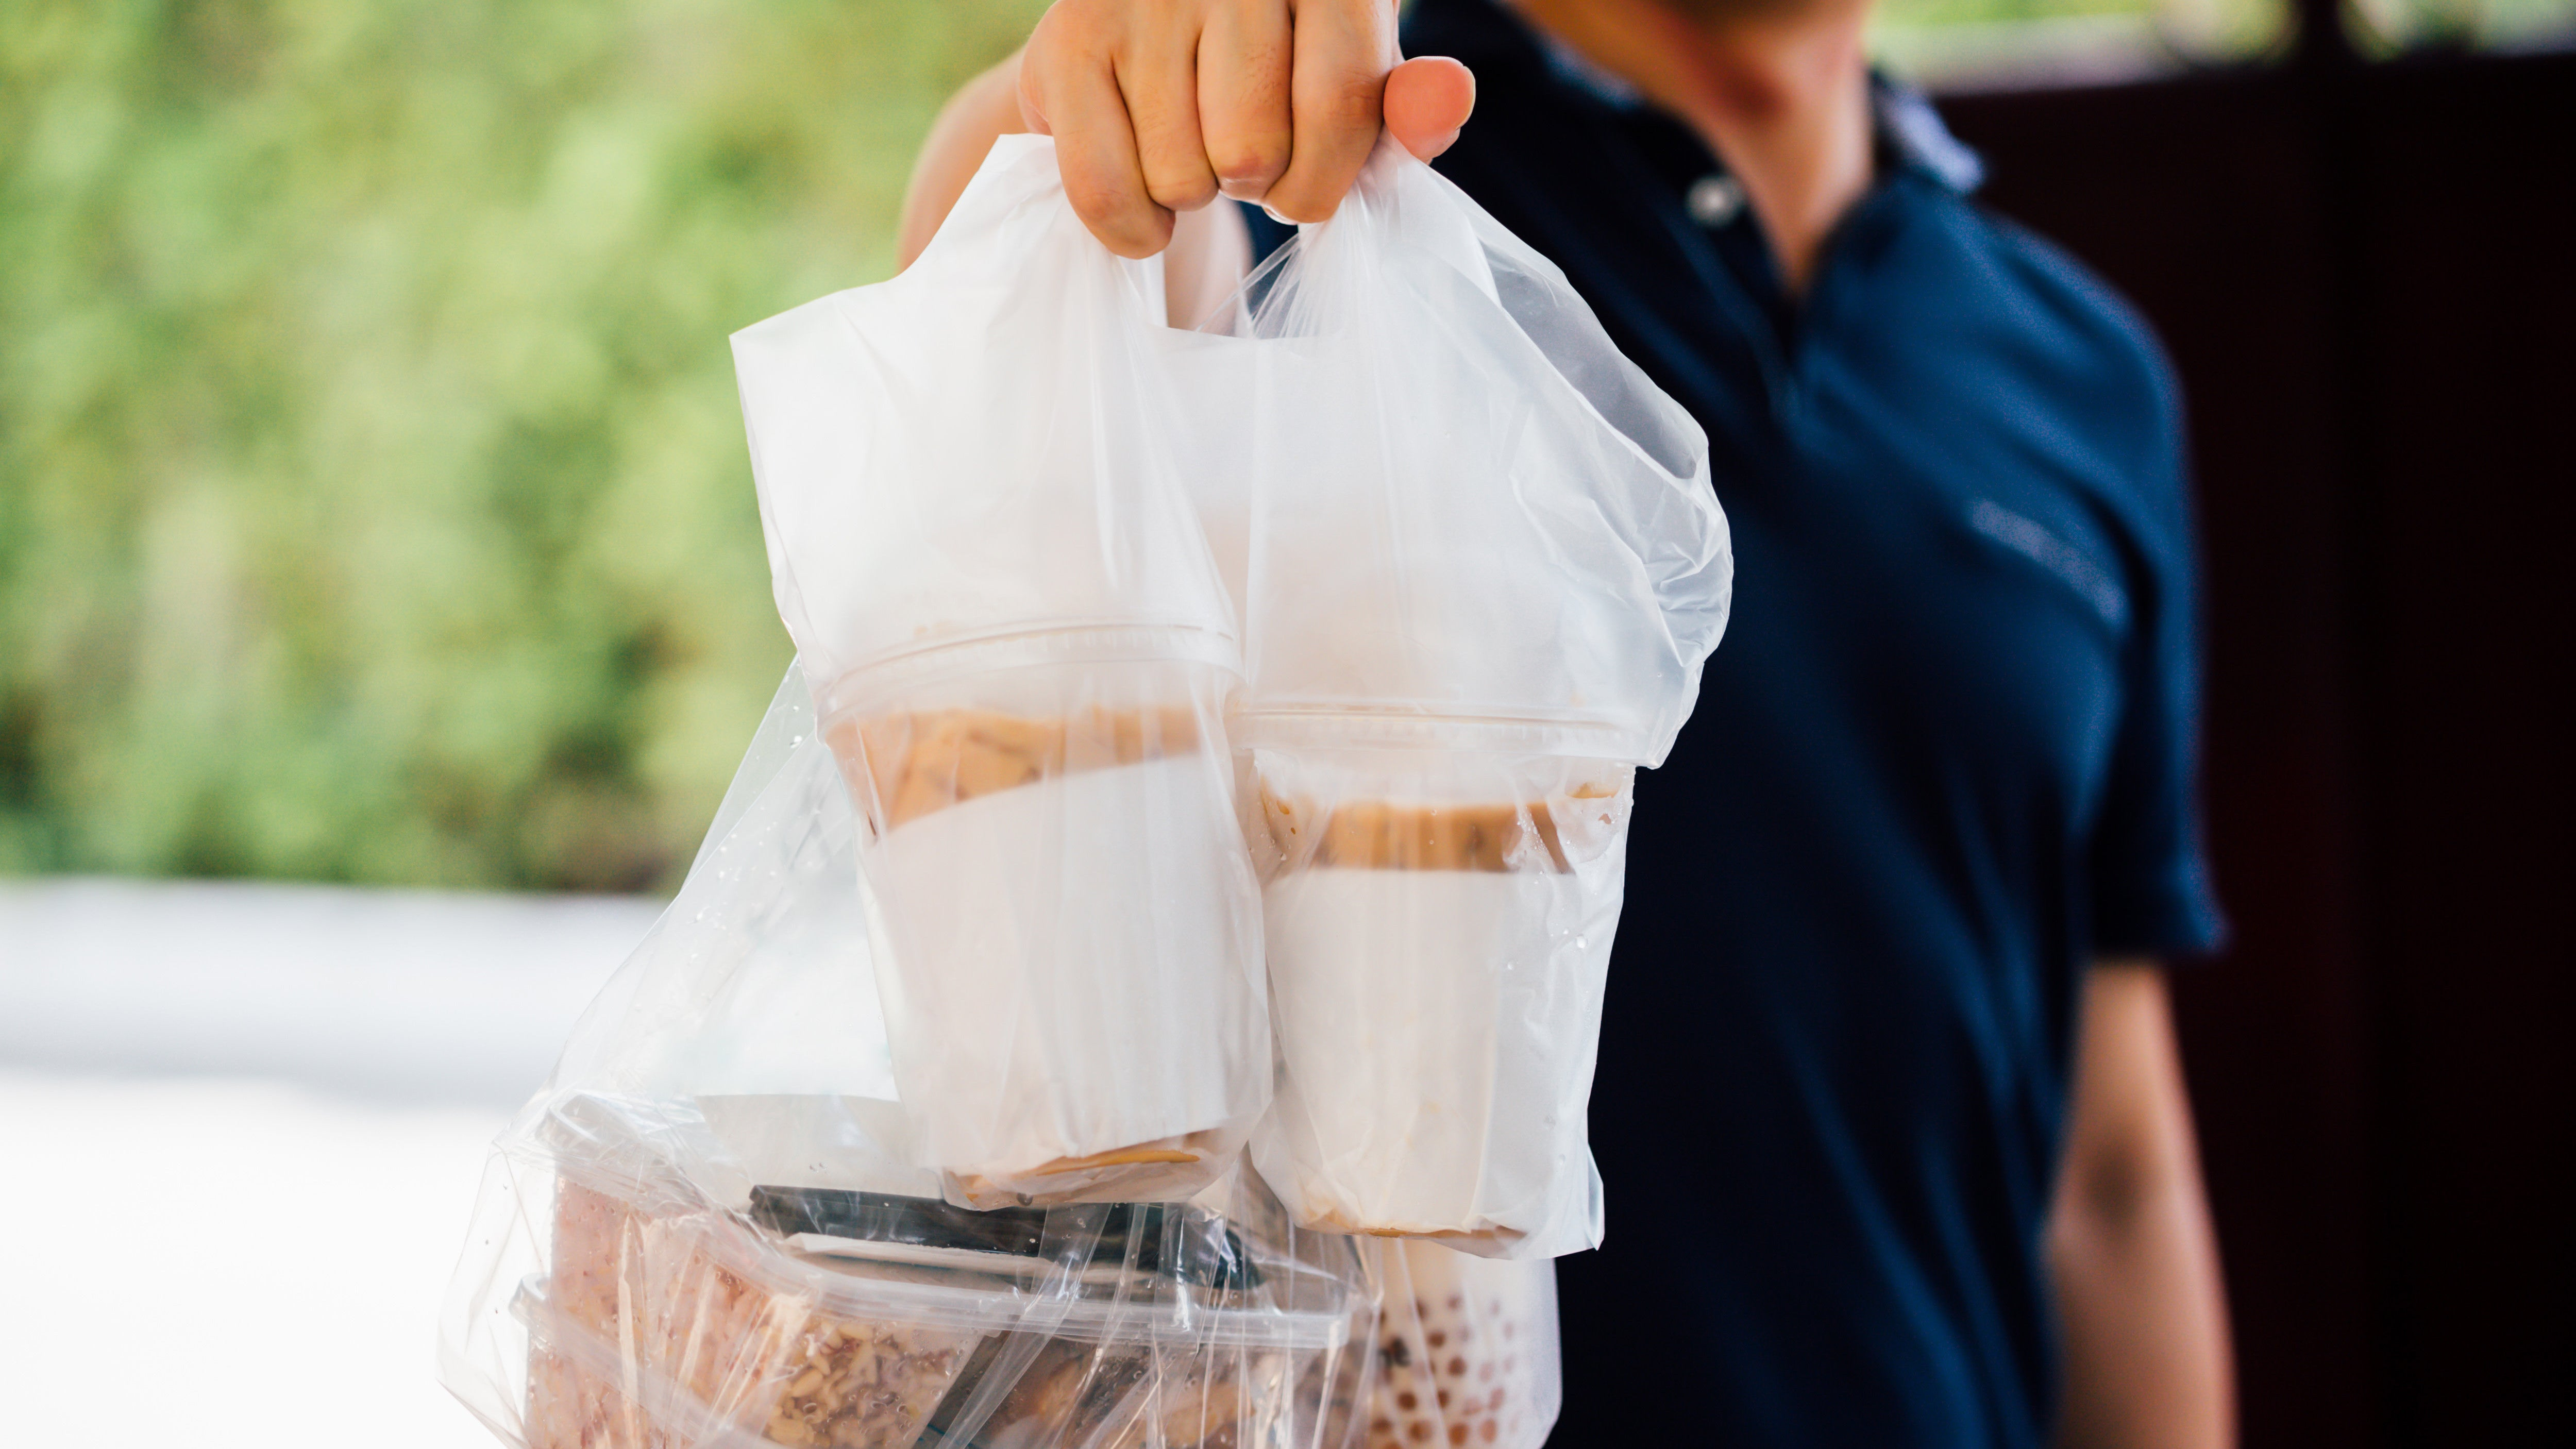 How To Reduce Your Food Delivery And Takeout Waste